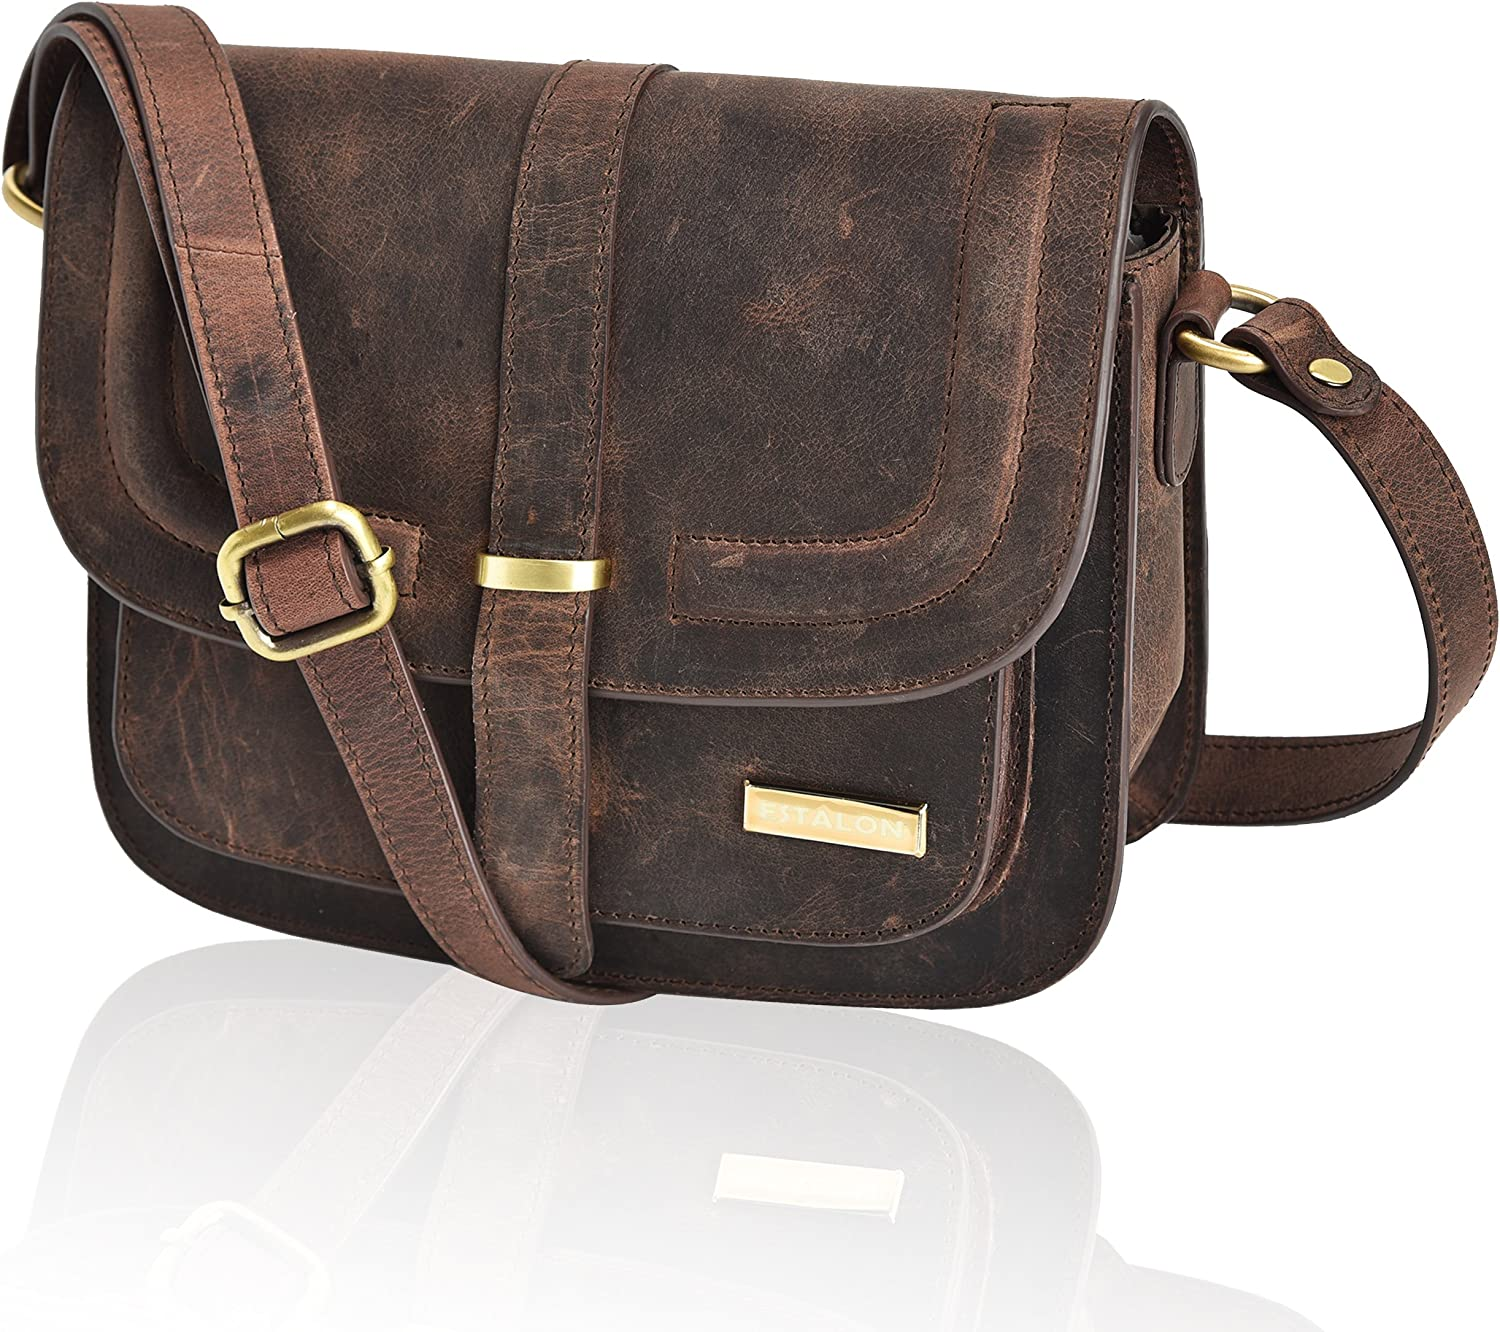 Crossbody Bags for Women - Real Leather Multi Pocket Travel Purse and Sling Bag